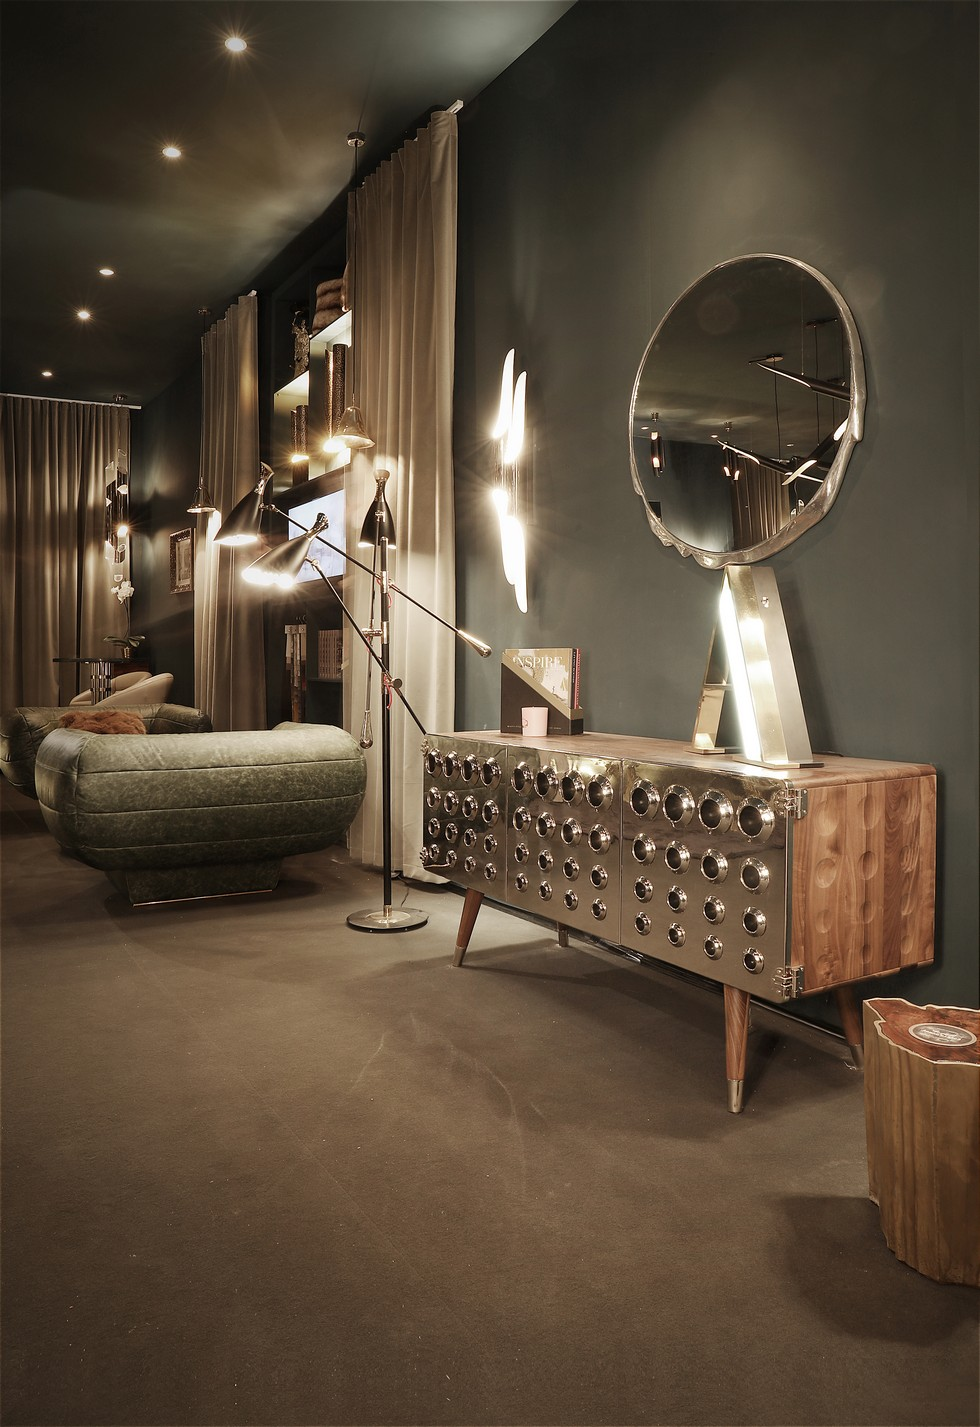 SALONE DEL MOBILE 2017 – Best design trends of HALL 1 AND 3 SALONE DEL MOBILE 2017 – Best design trends of HALL 1 AND 3 SALONE DEL MOBILE 2017 – Best design trends of HALL 1 AND 3 Covet Lounge 2